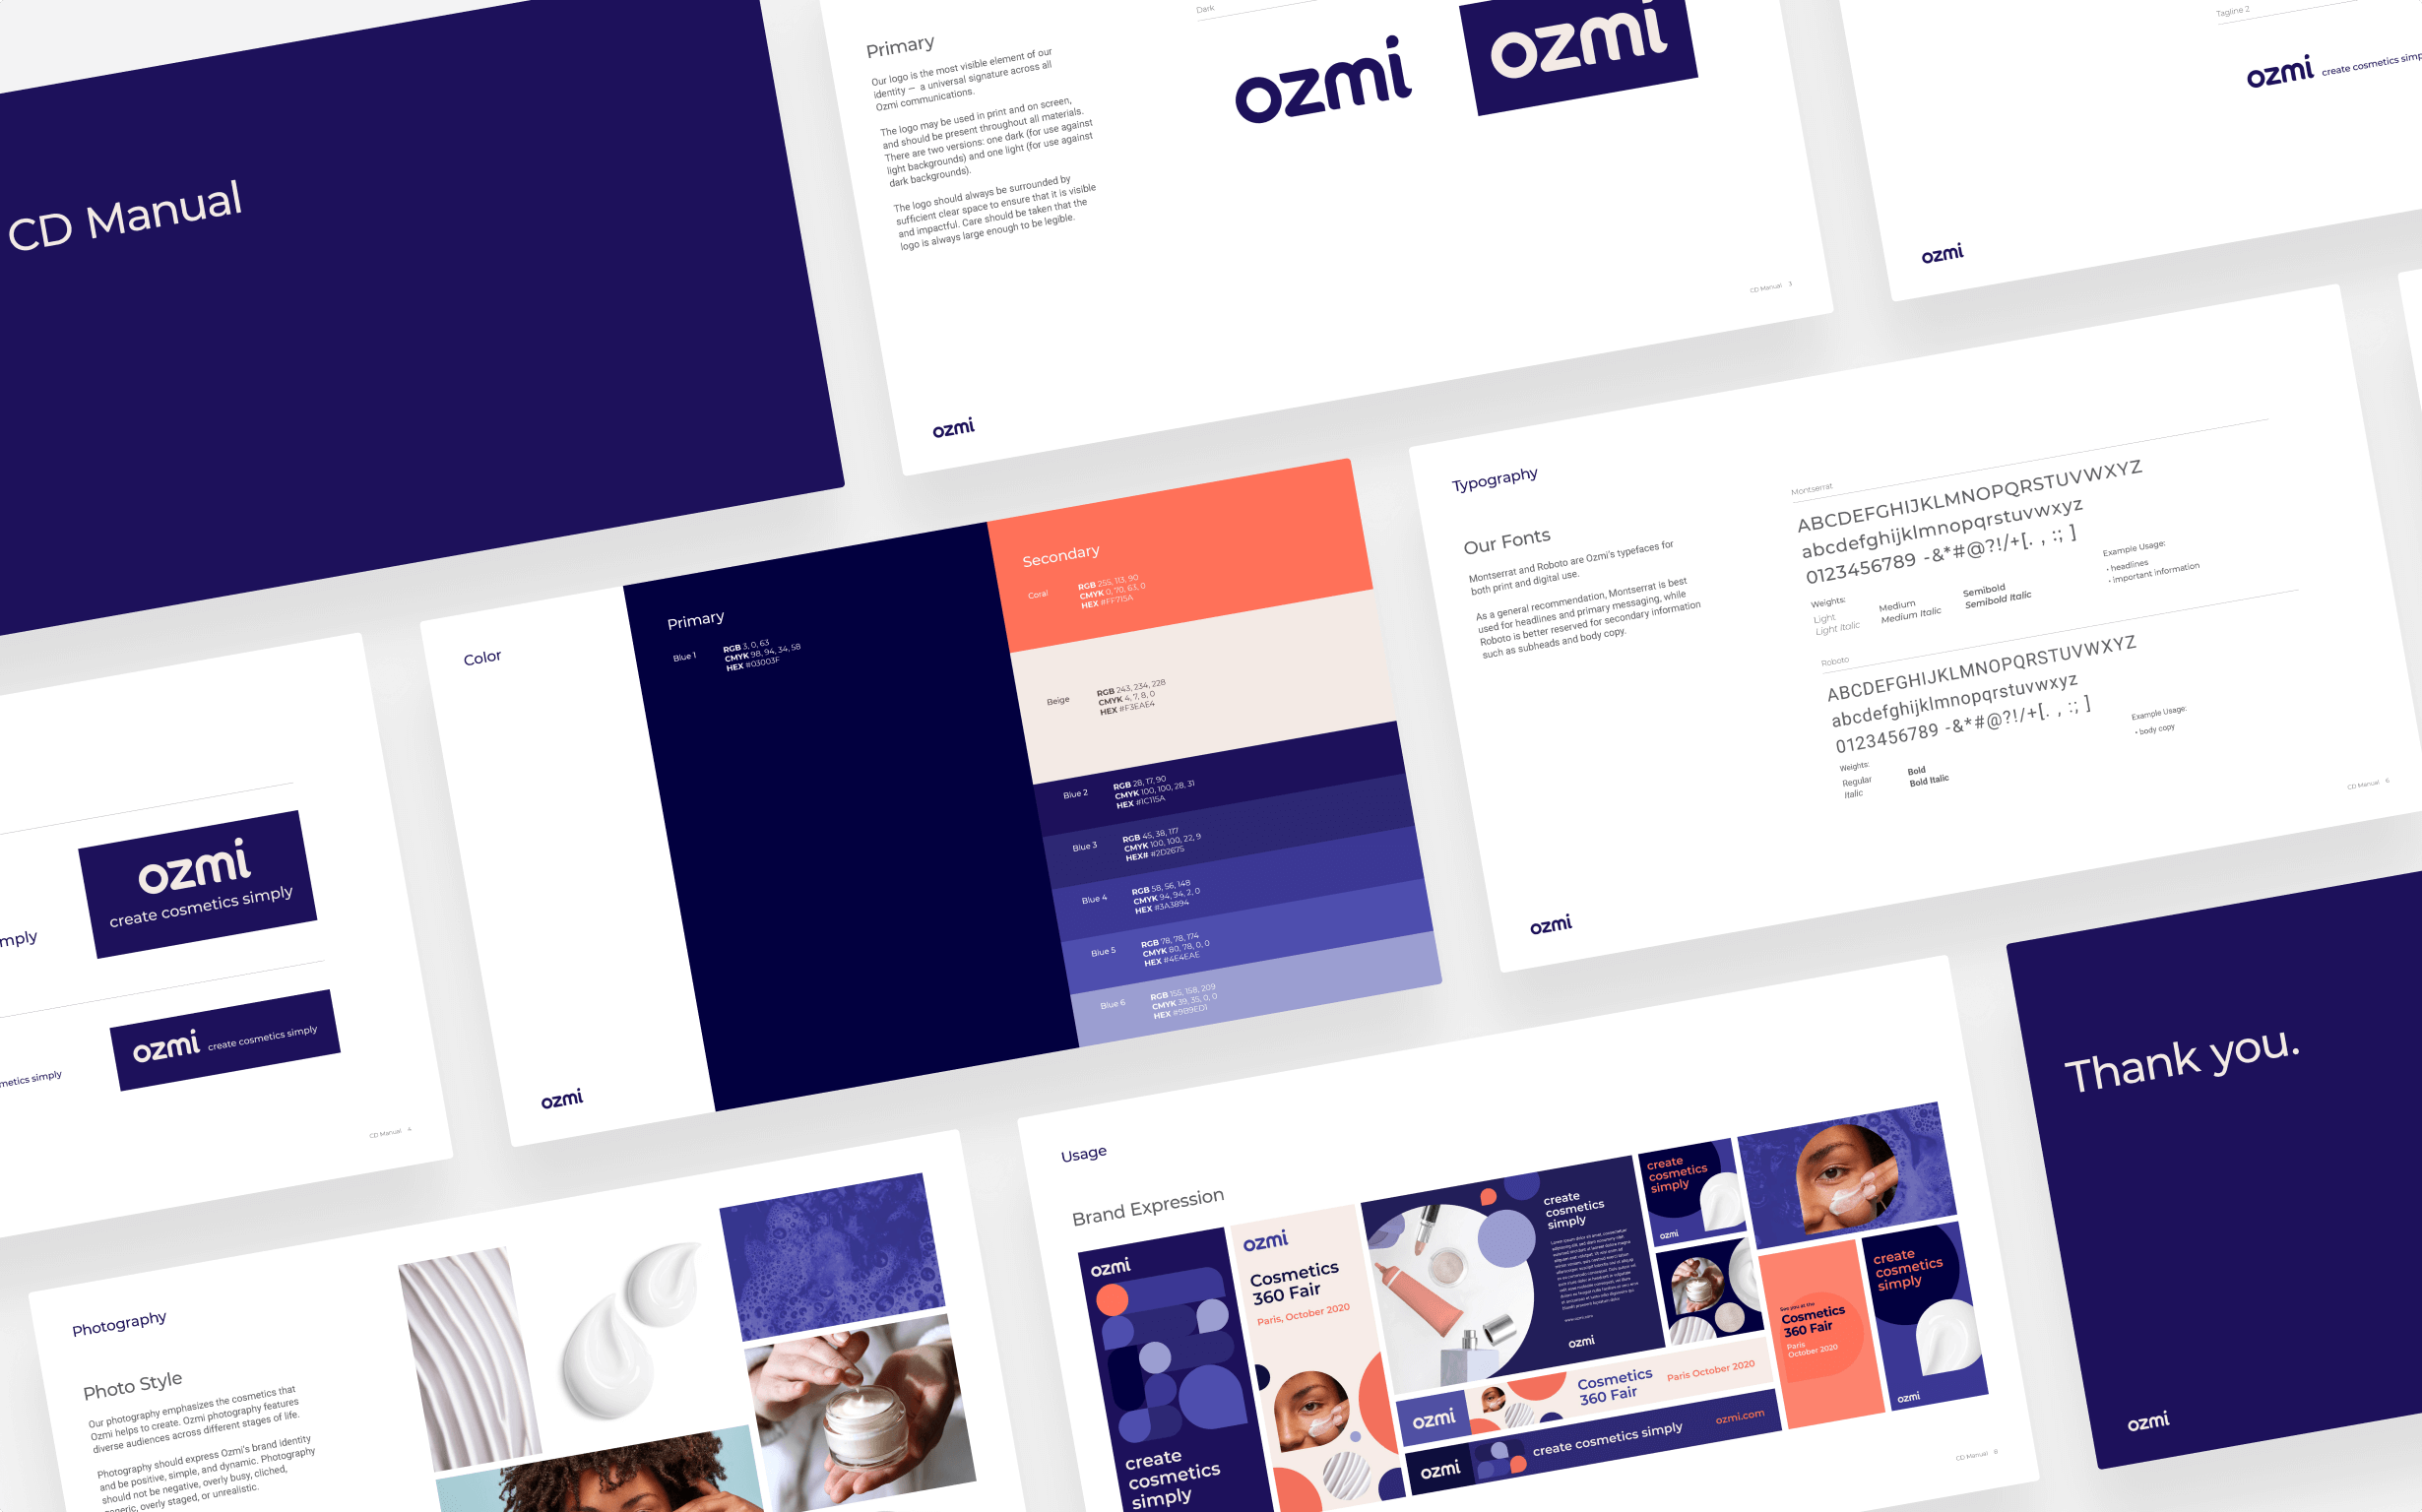 A slide deck outlining Ozmi's brand guidelines including colors, typography, usage,, and expression.